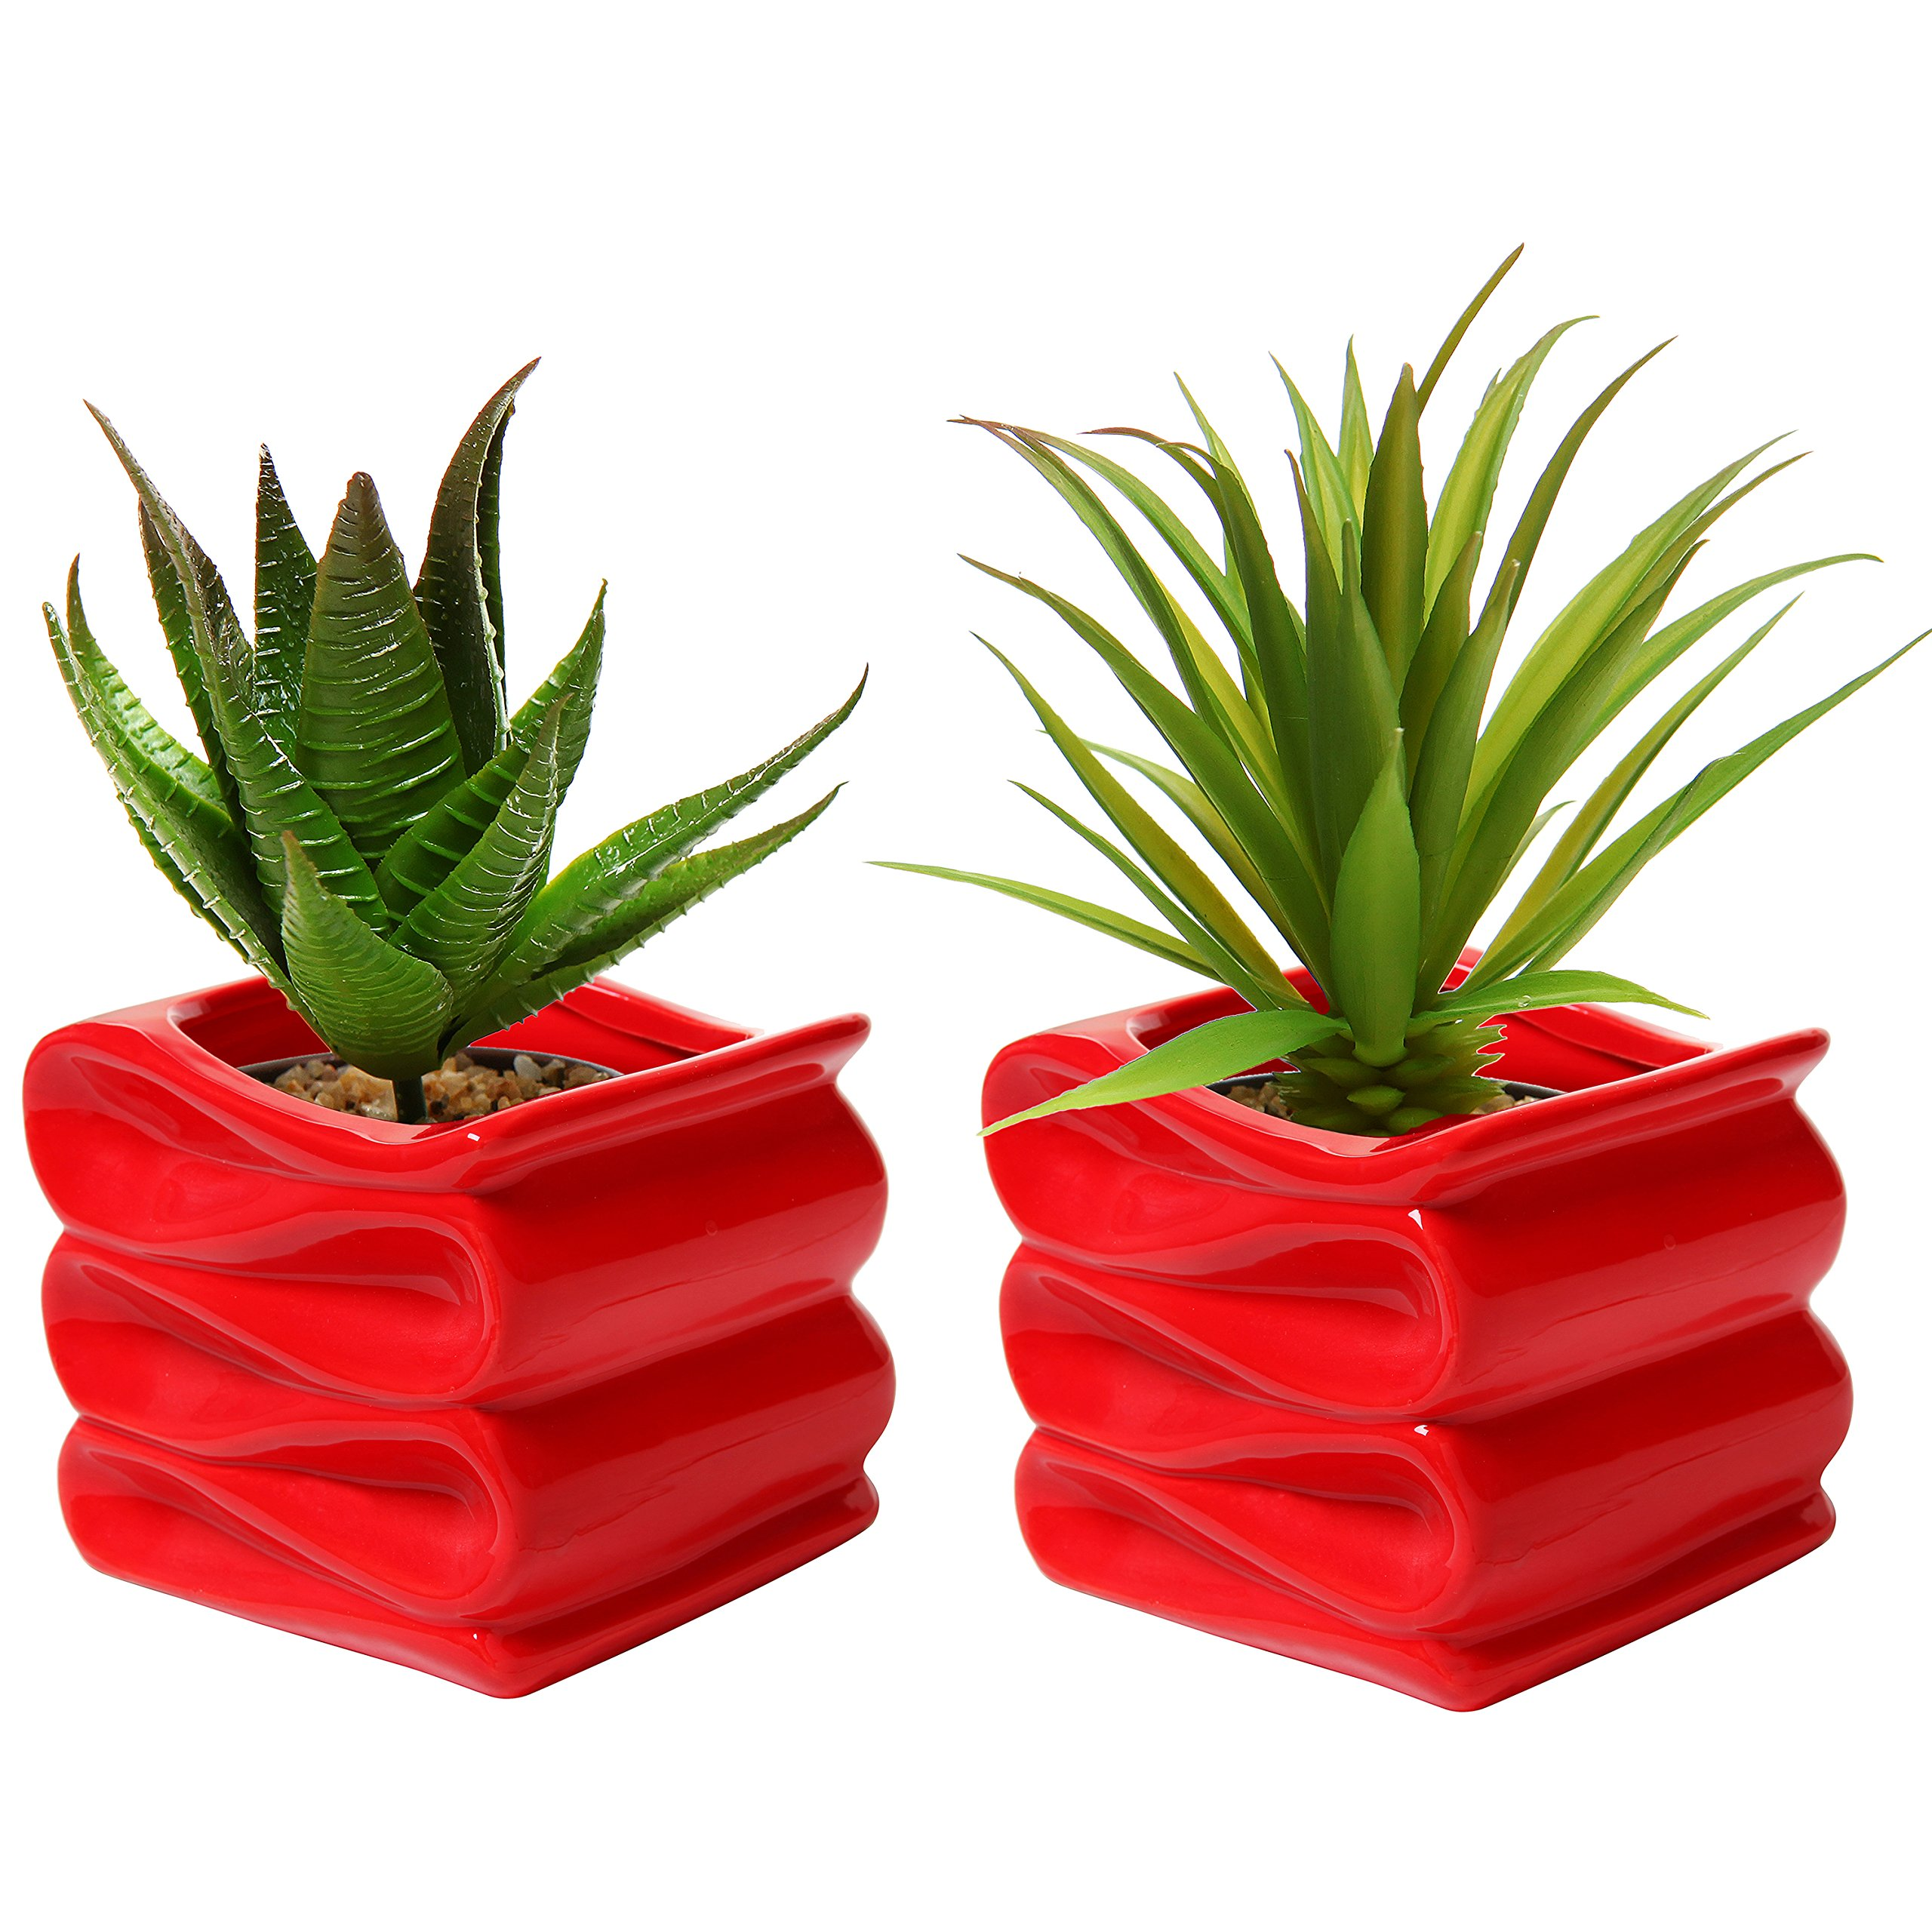 MyGift Set of 2 Modern Decorative Folded Design Small Ceramic Plant Pot / Flower Planter - Red